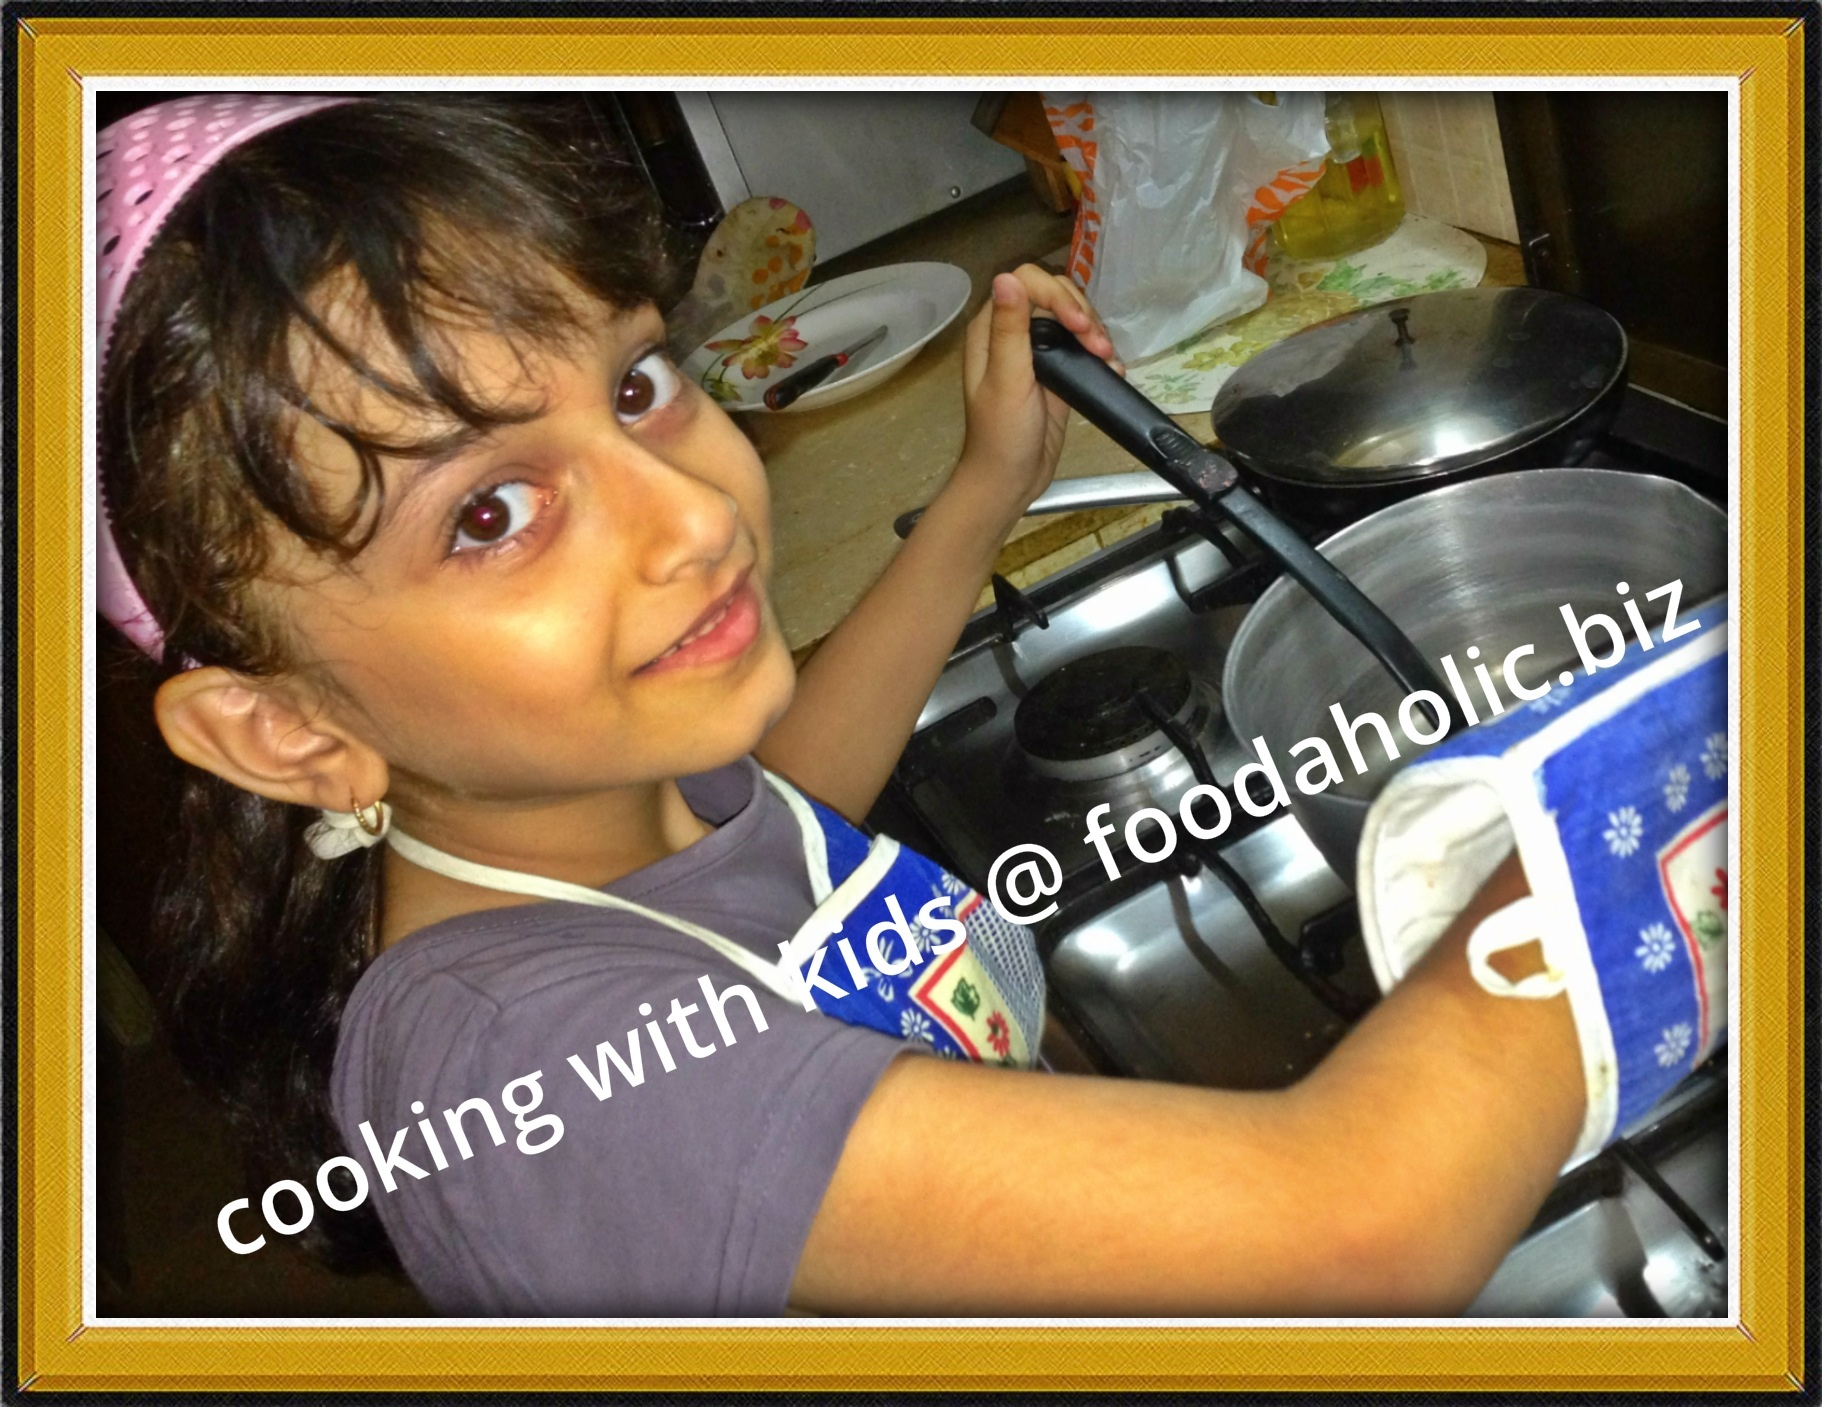 Cooking with Kids: Introduction and Safety Measures